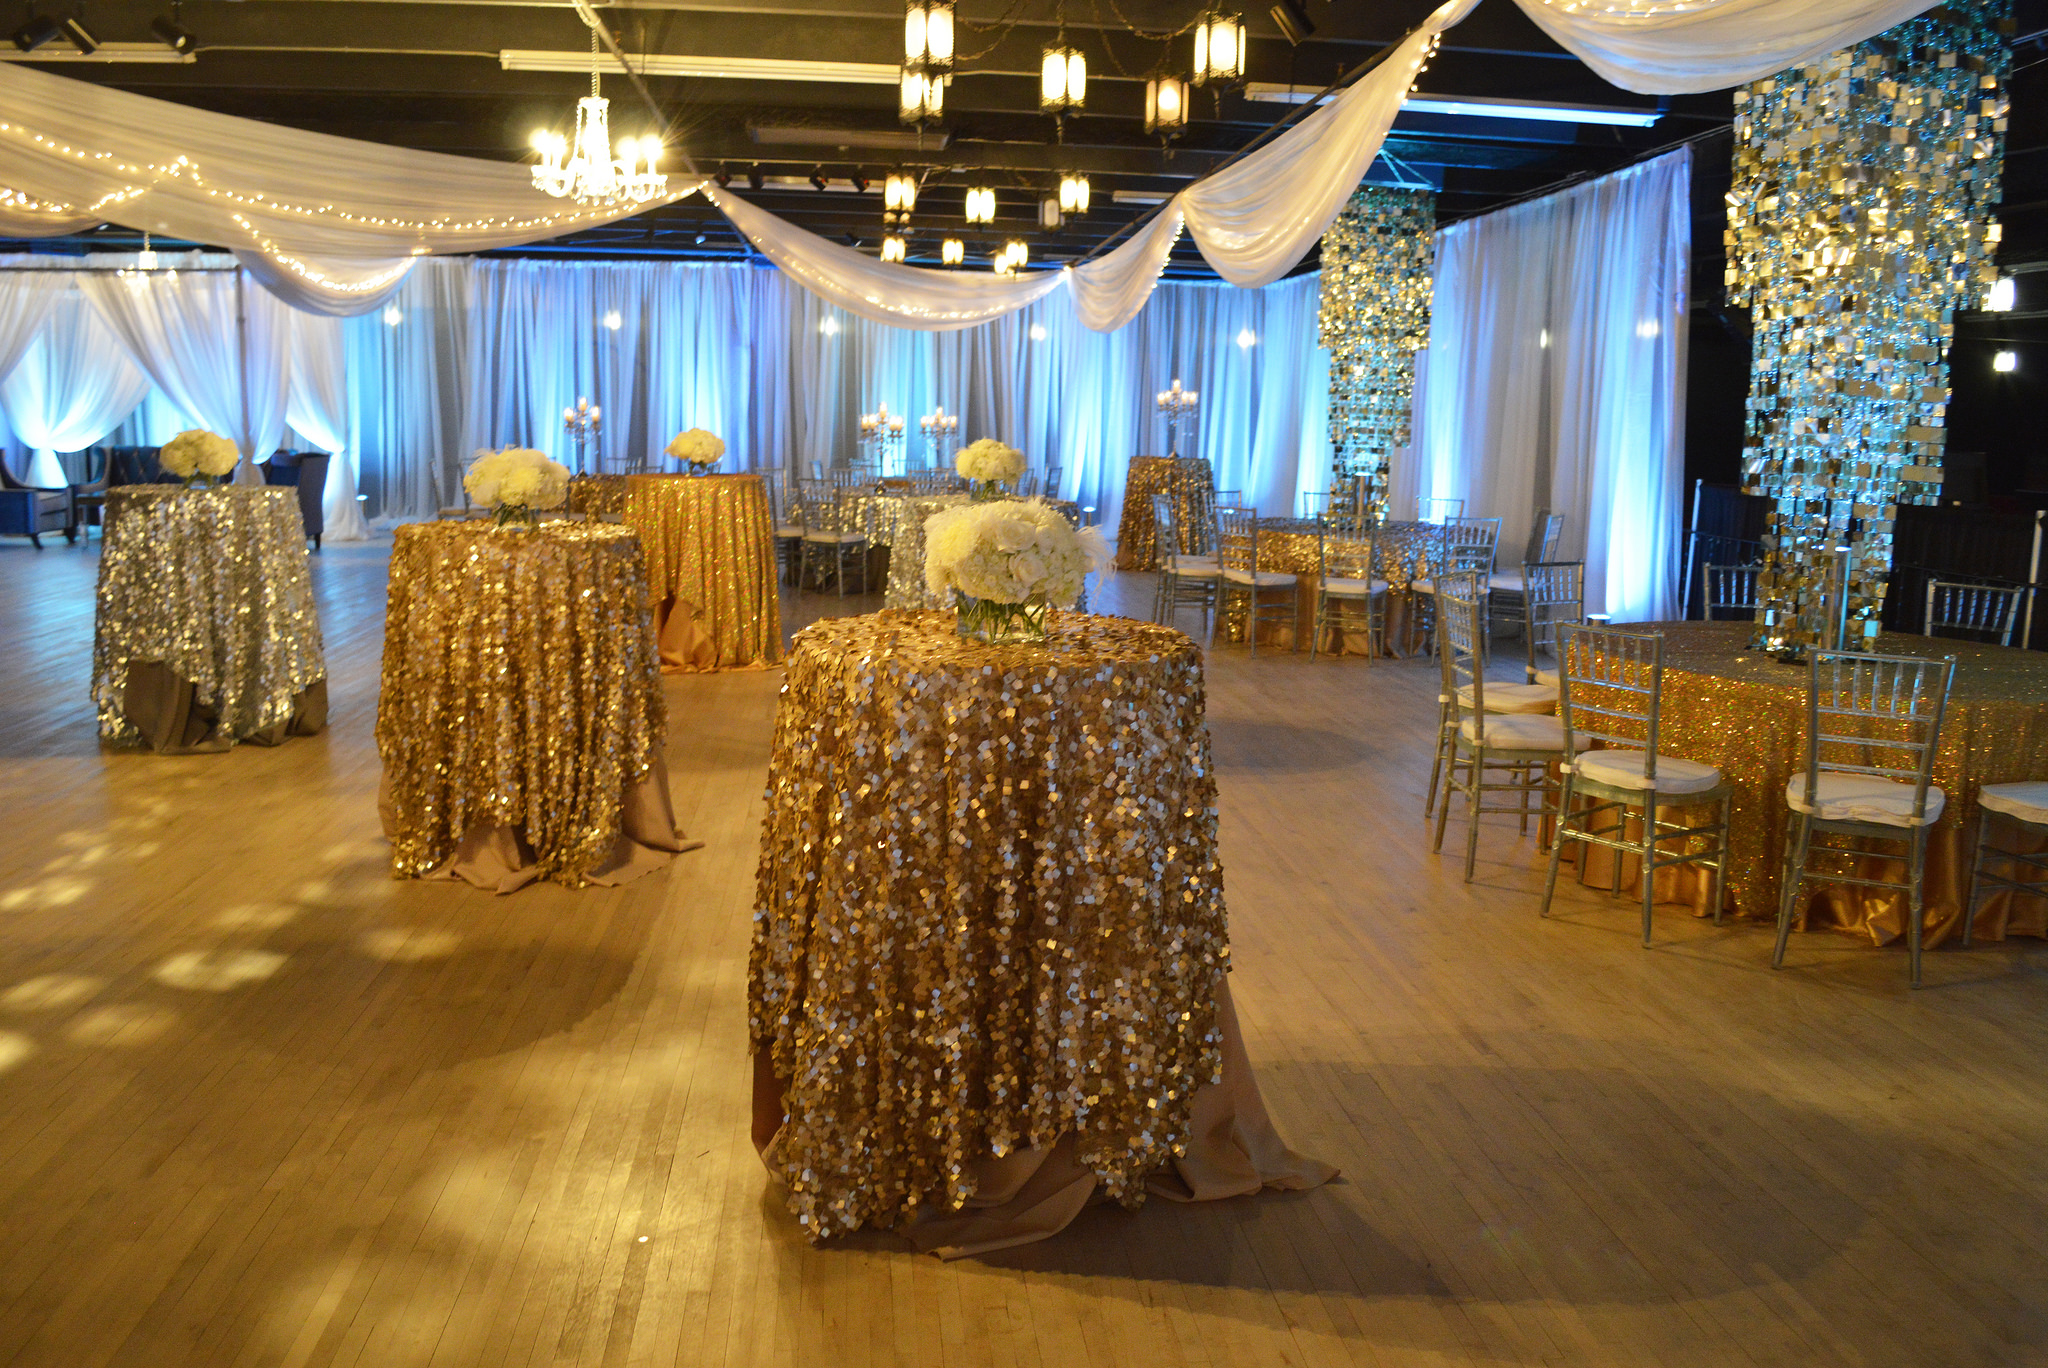 anna chair cover & wedding linens rental burnaby bc swivel rocking parts social event  festivities decor and floral